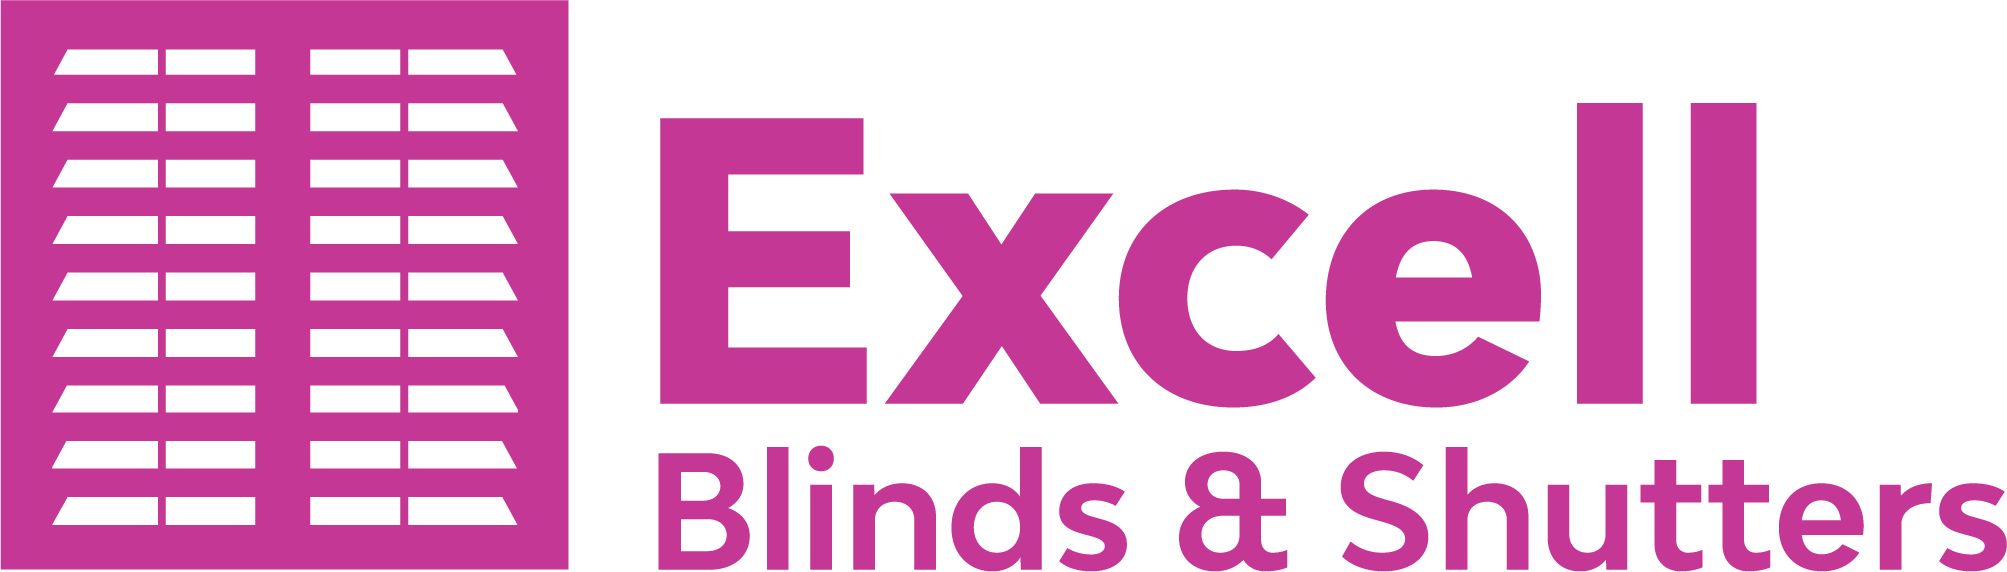 http://Excell%20Blinds%20&%20Shutters